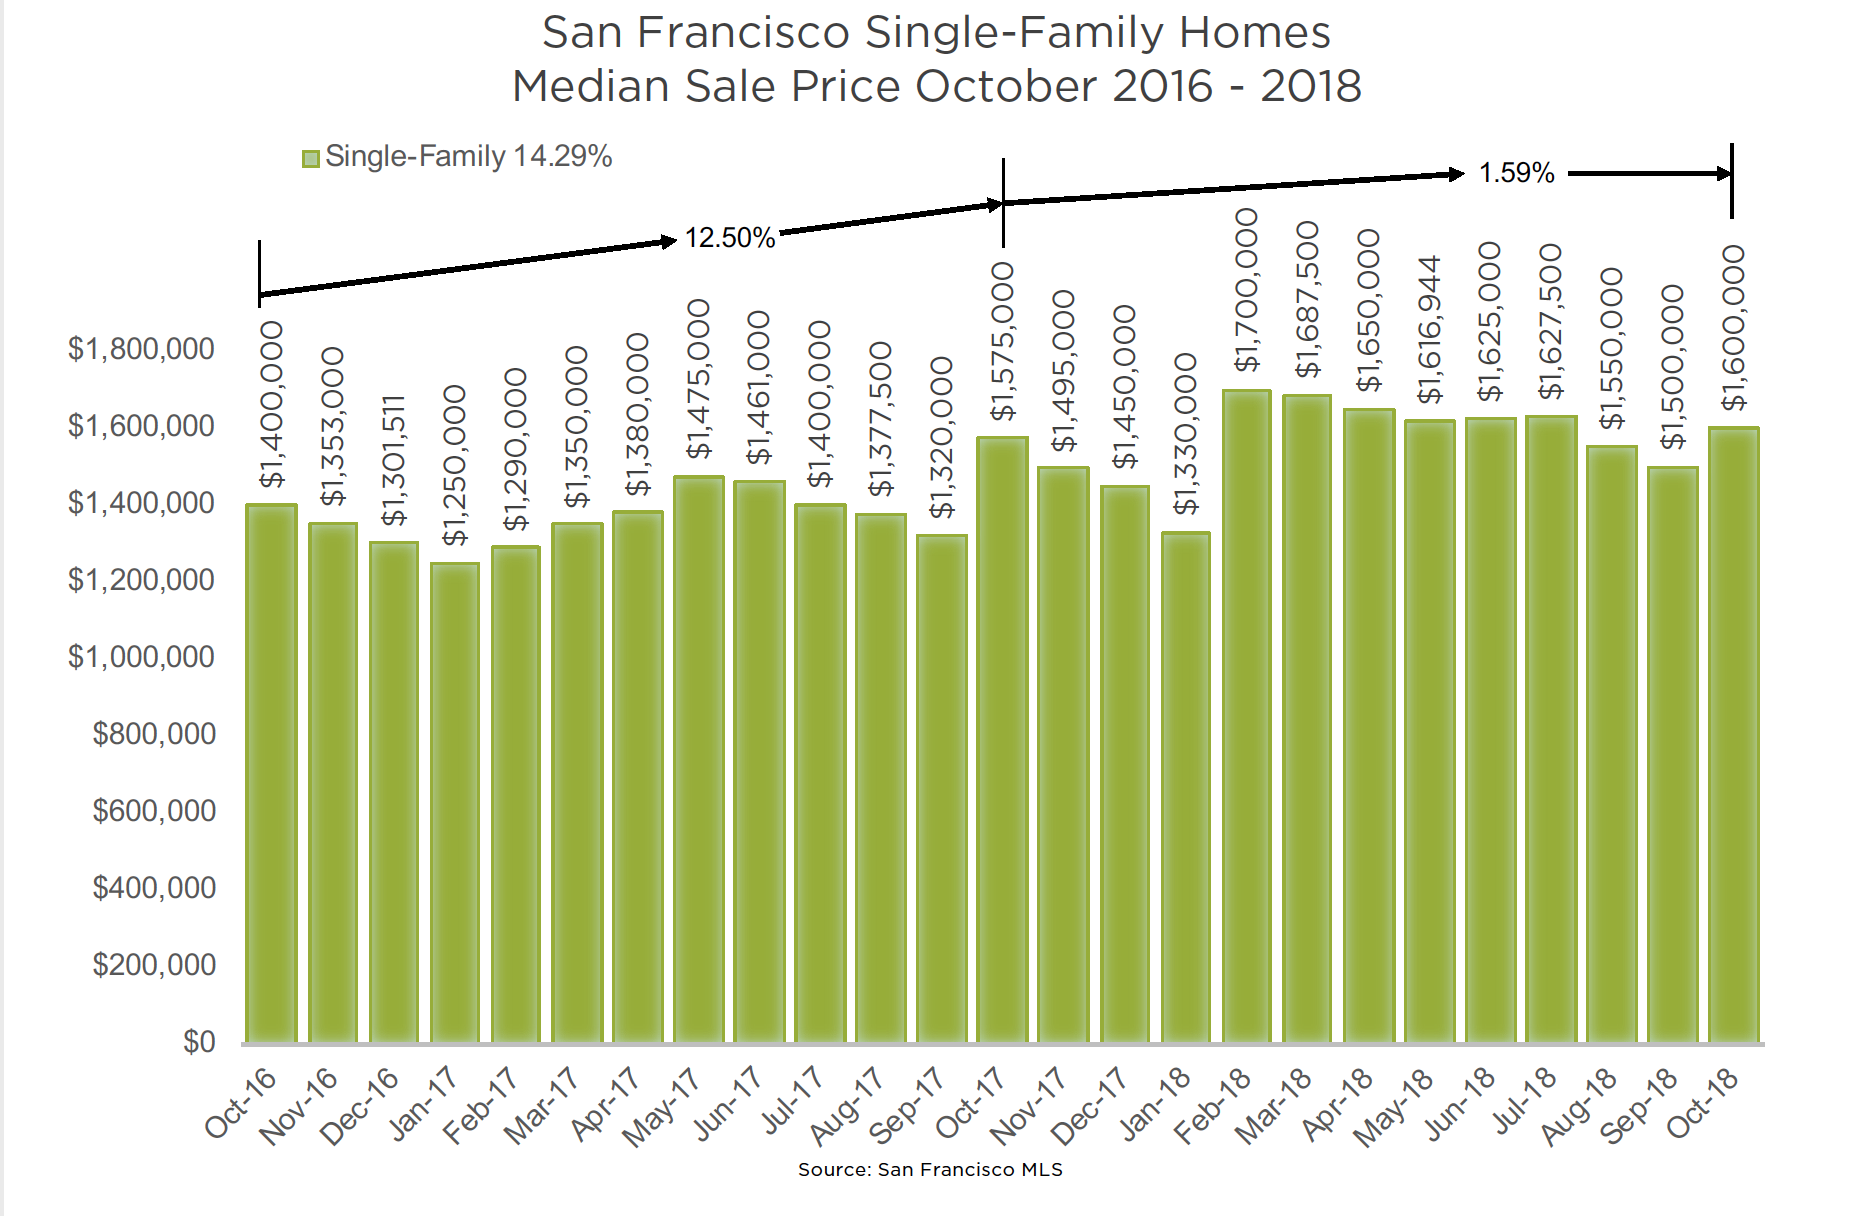 San Francisco Housing Market Soft Landing